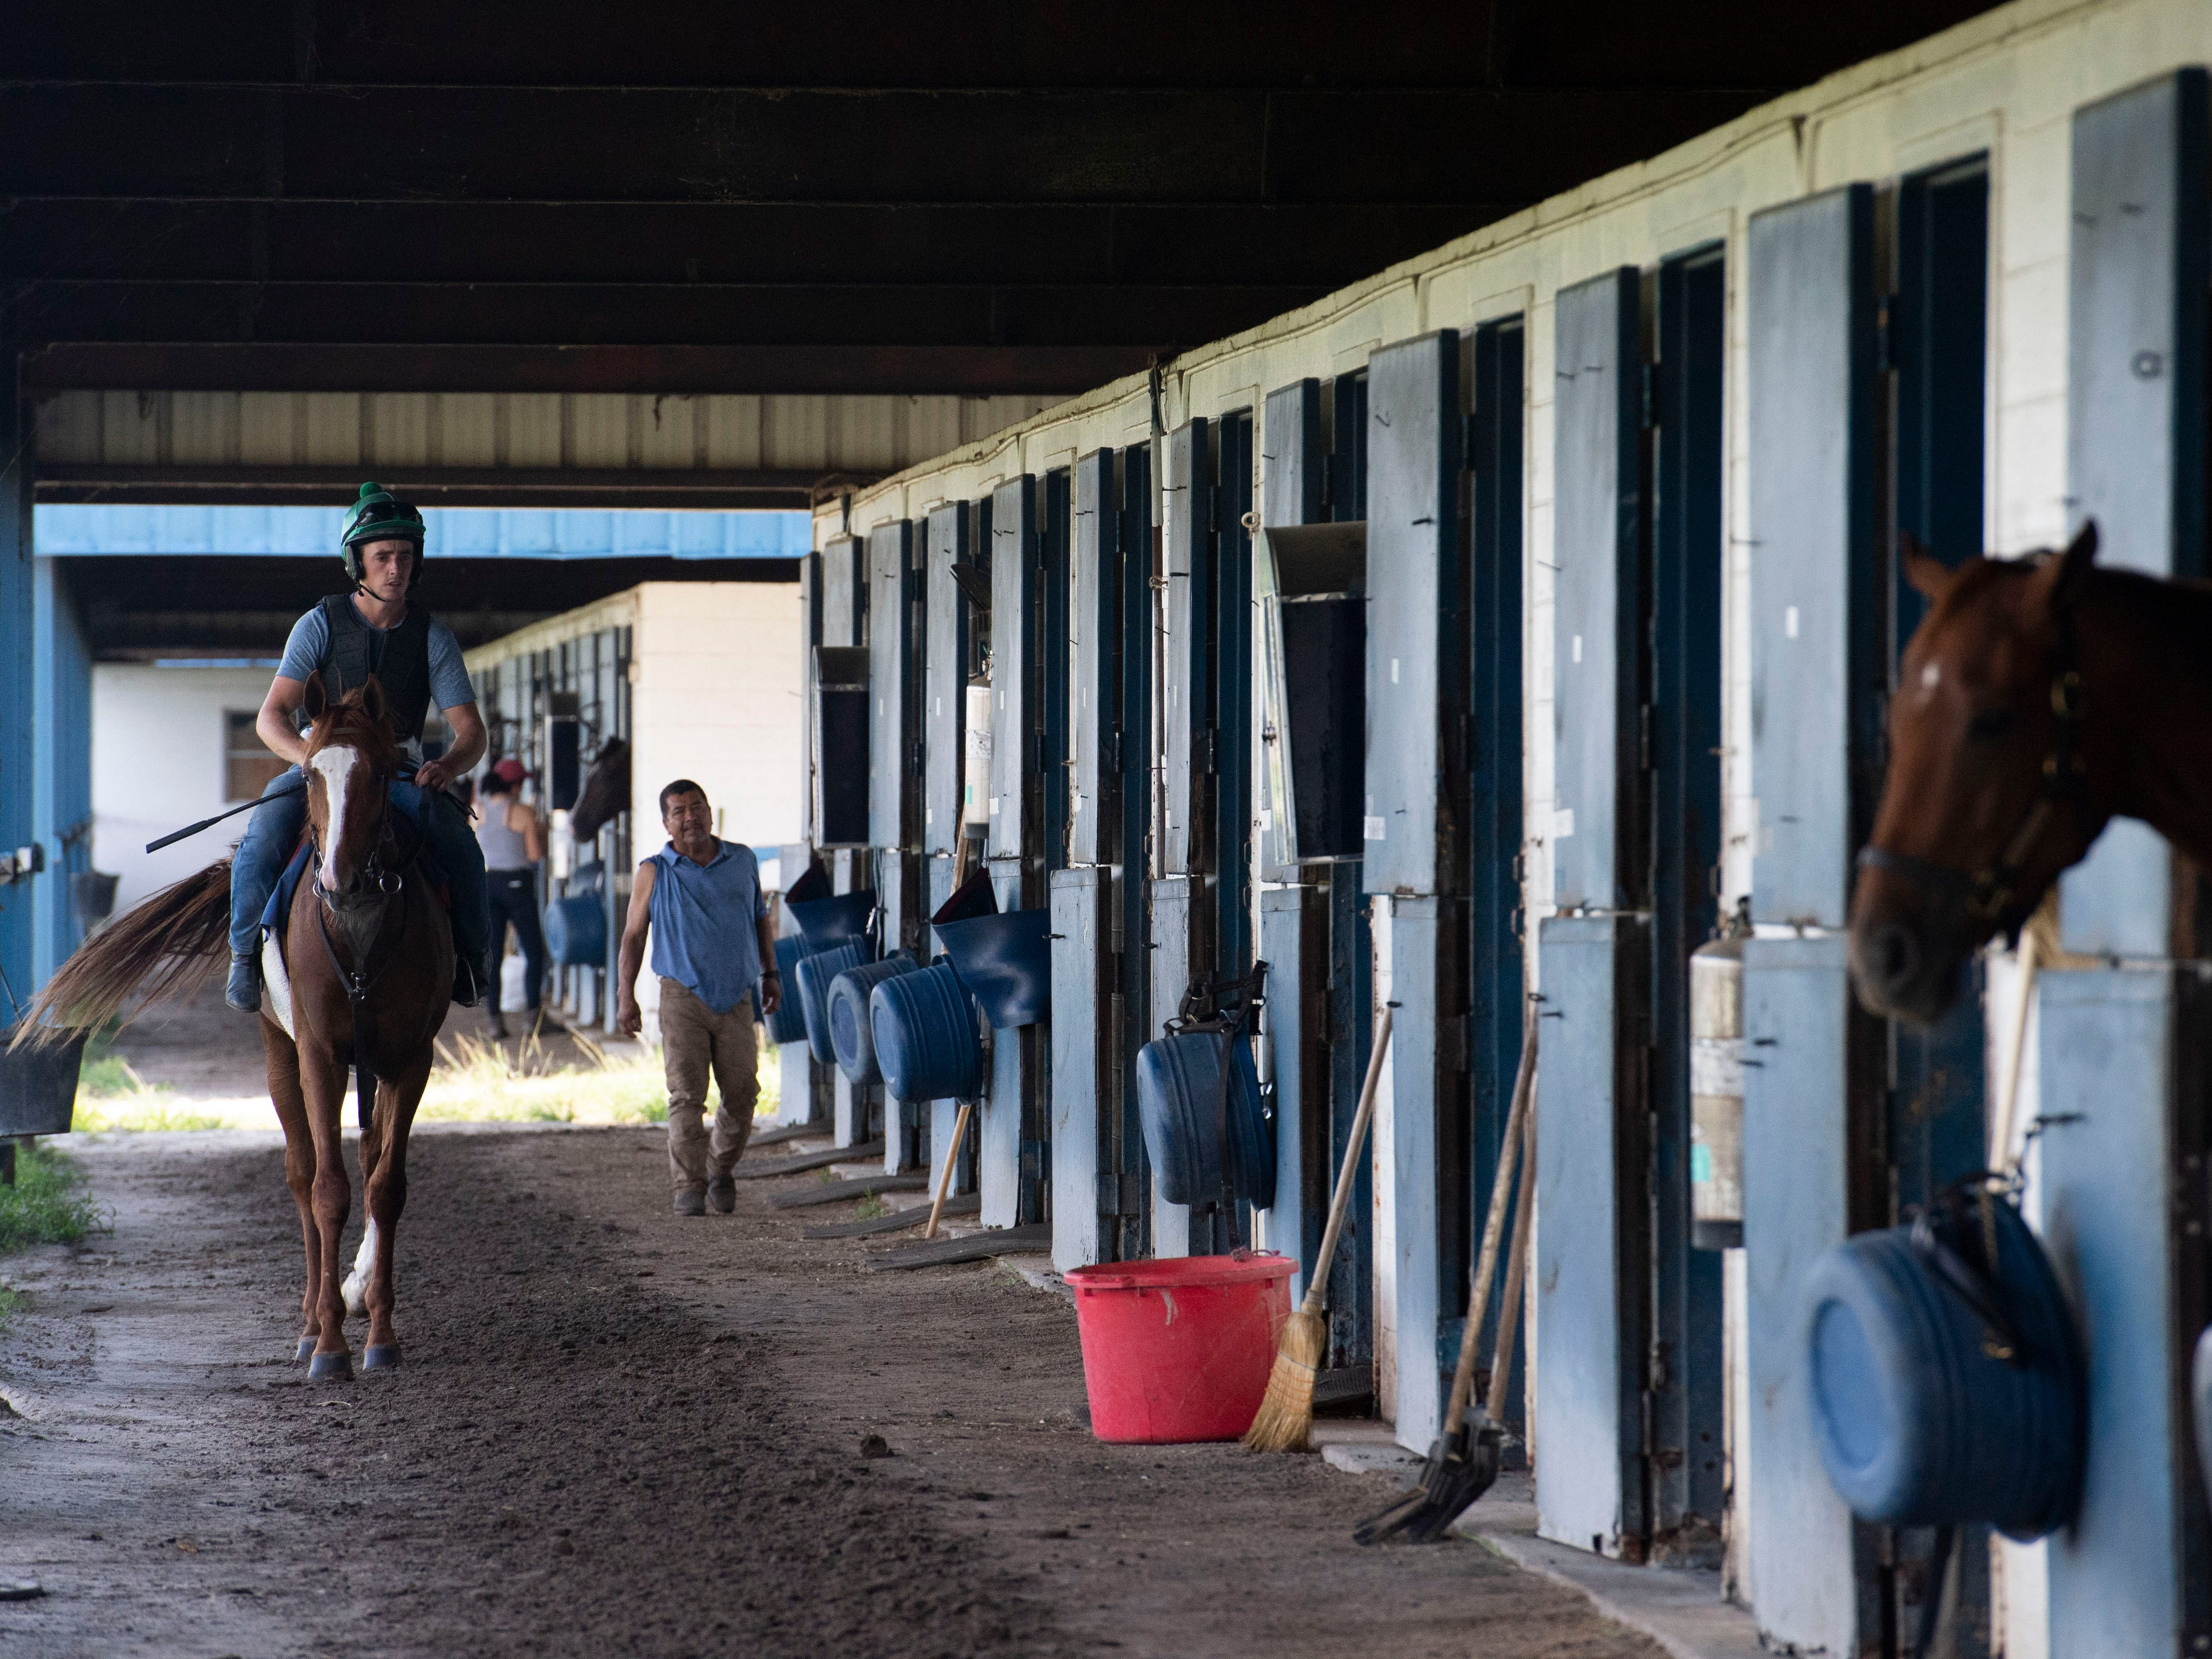 The Payson Park Training Facility, seen Thursday, May 9, 2019, is a nearly 400-acre property that offers horse trainers a one-mile dirt track, one-mile turf track and five miles of English hacking trails. About 500 horses get trained on the property throughout the winter months, and this year's group included Country House, Code of Honor and Tacitus, the top three finishers of the 145th Kentucky Derby.